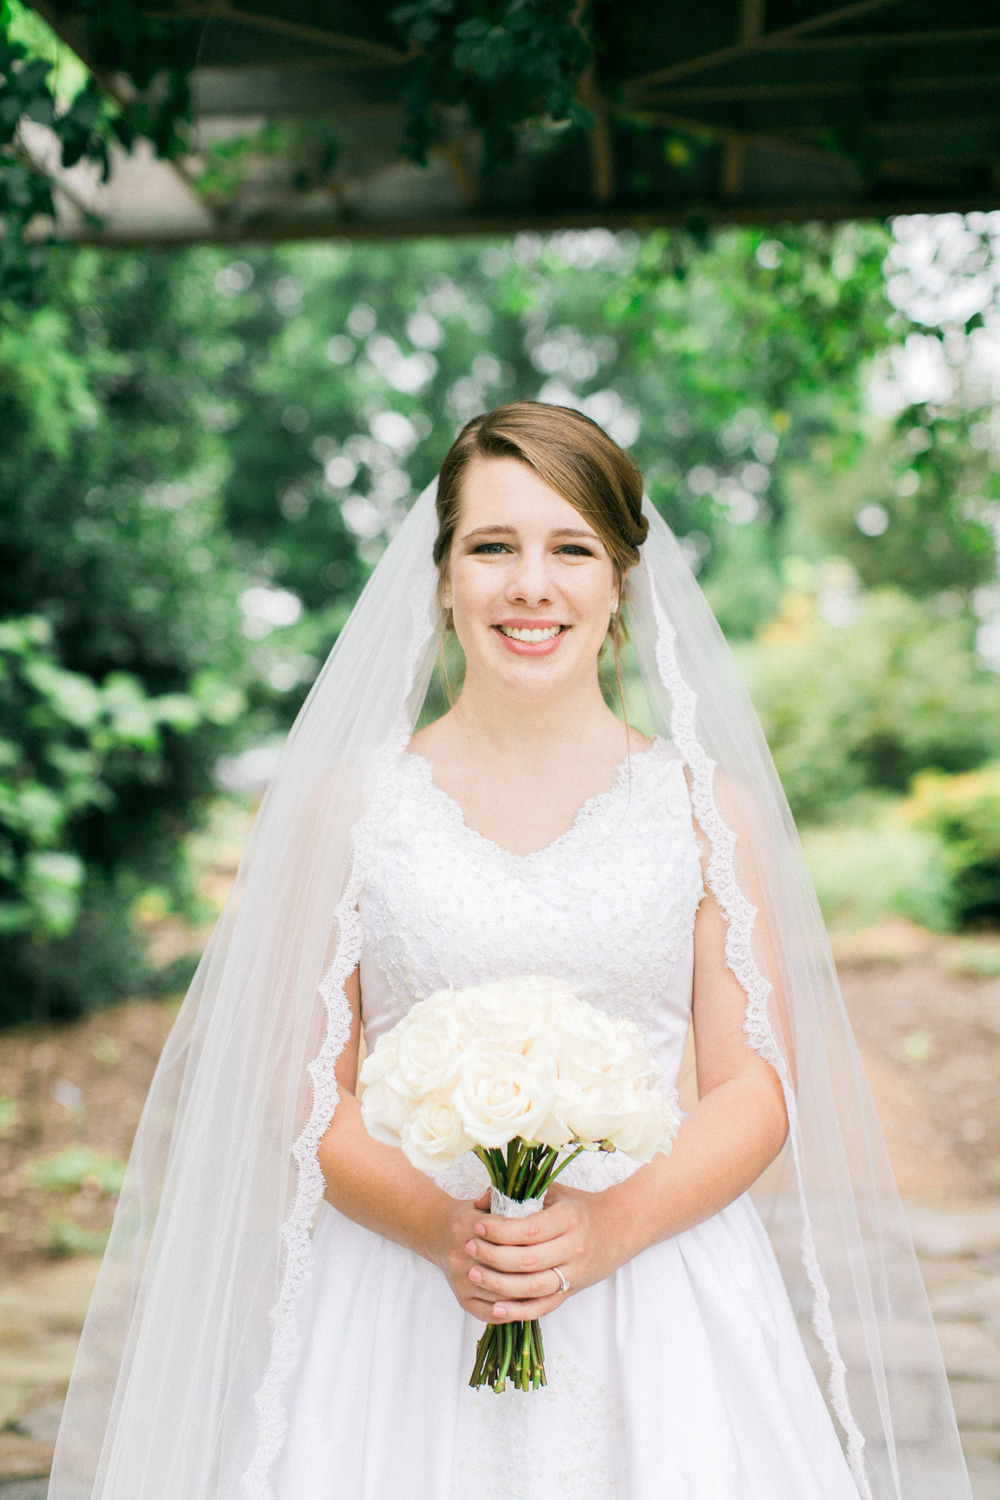 AKP-courtneywilliamsbridals-blog 33.jpg